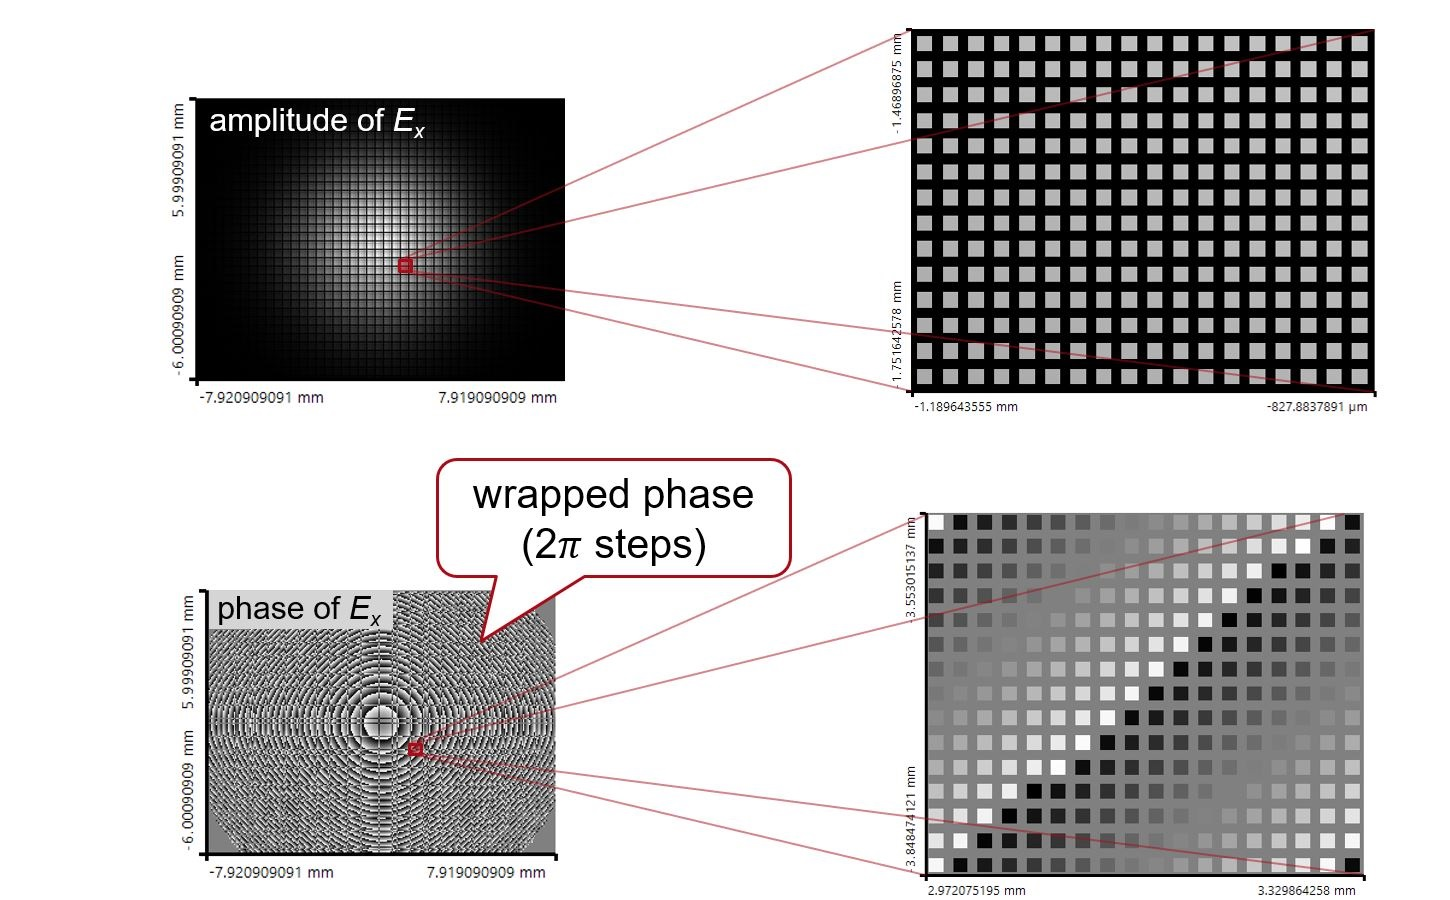 Simulation Of Light Diffraction At Pixels Of A Spatial Light Modulator